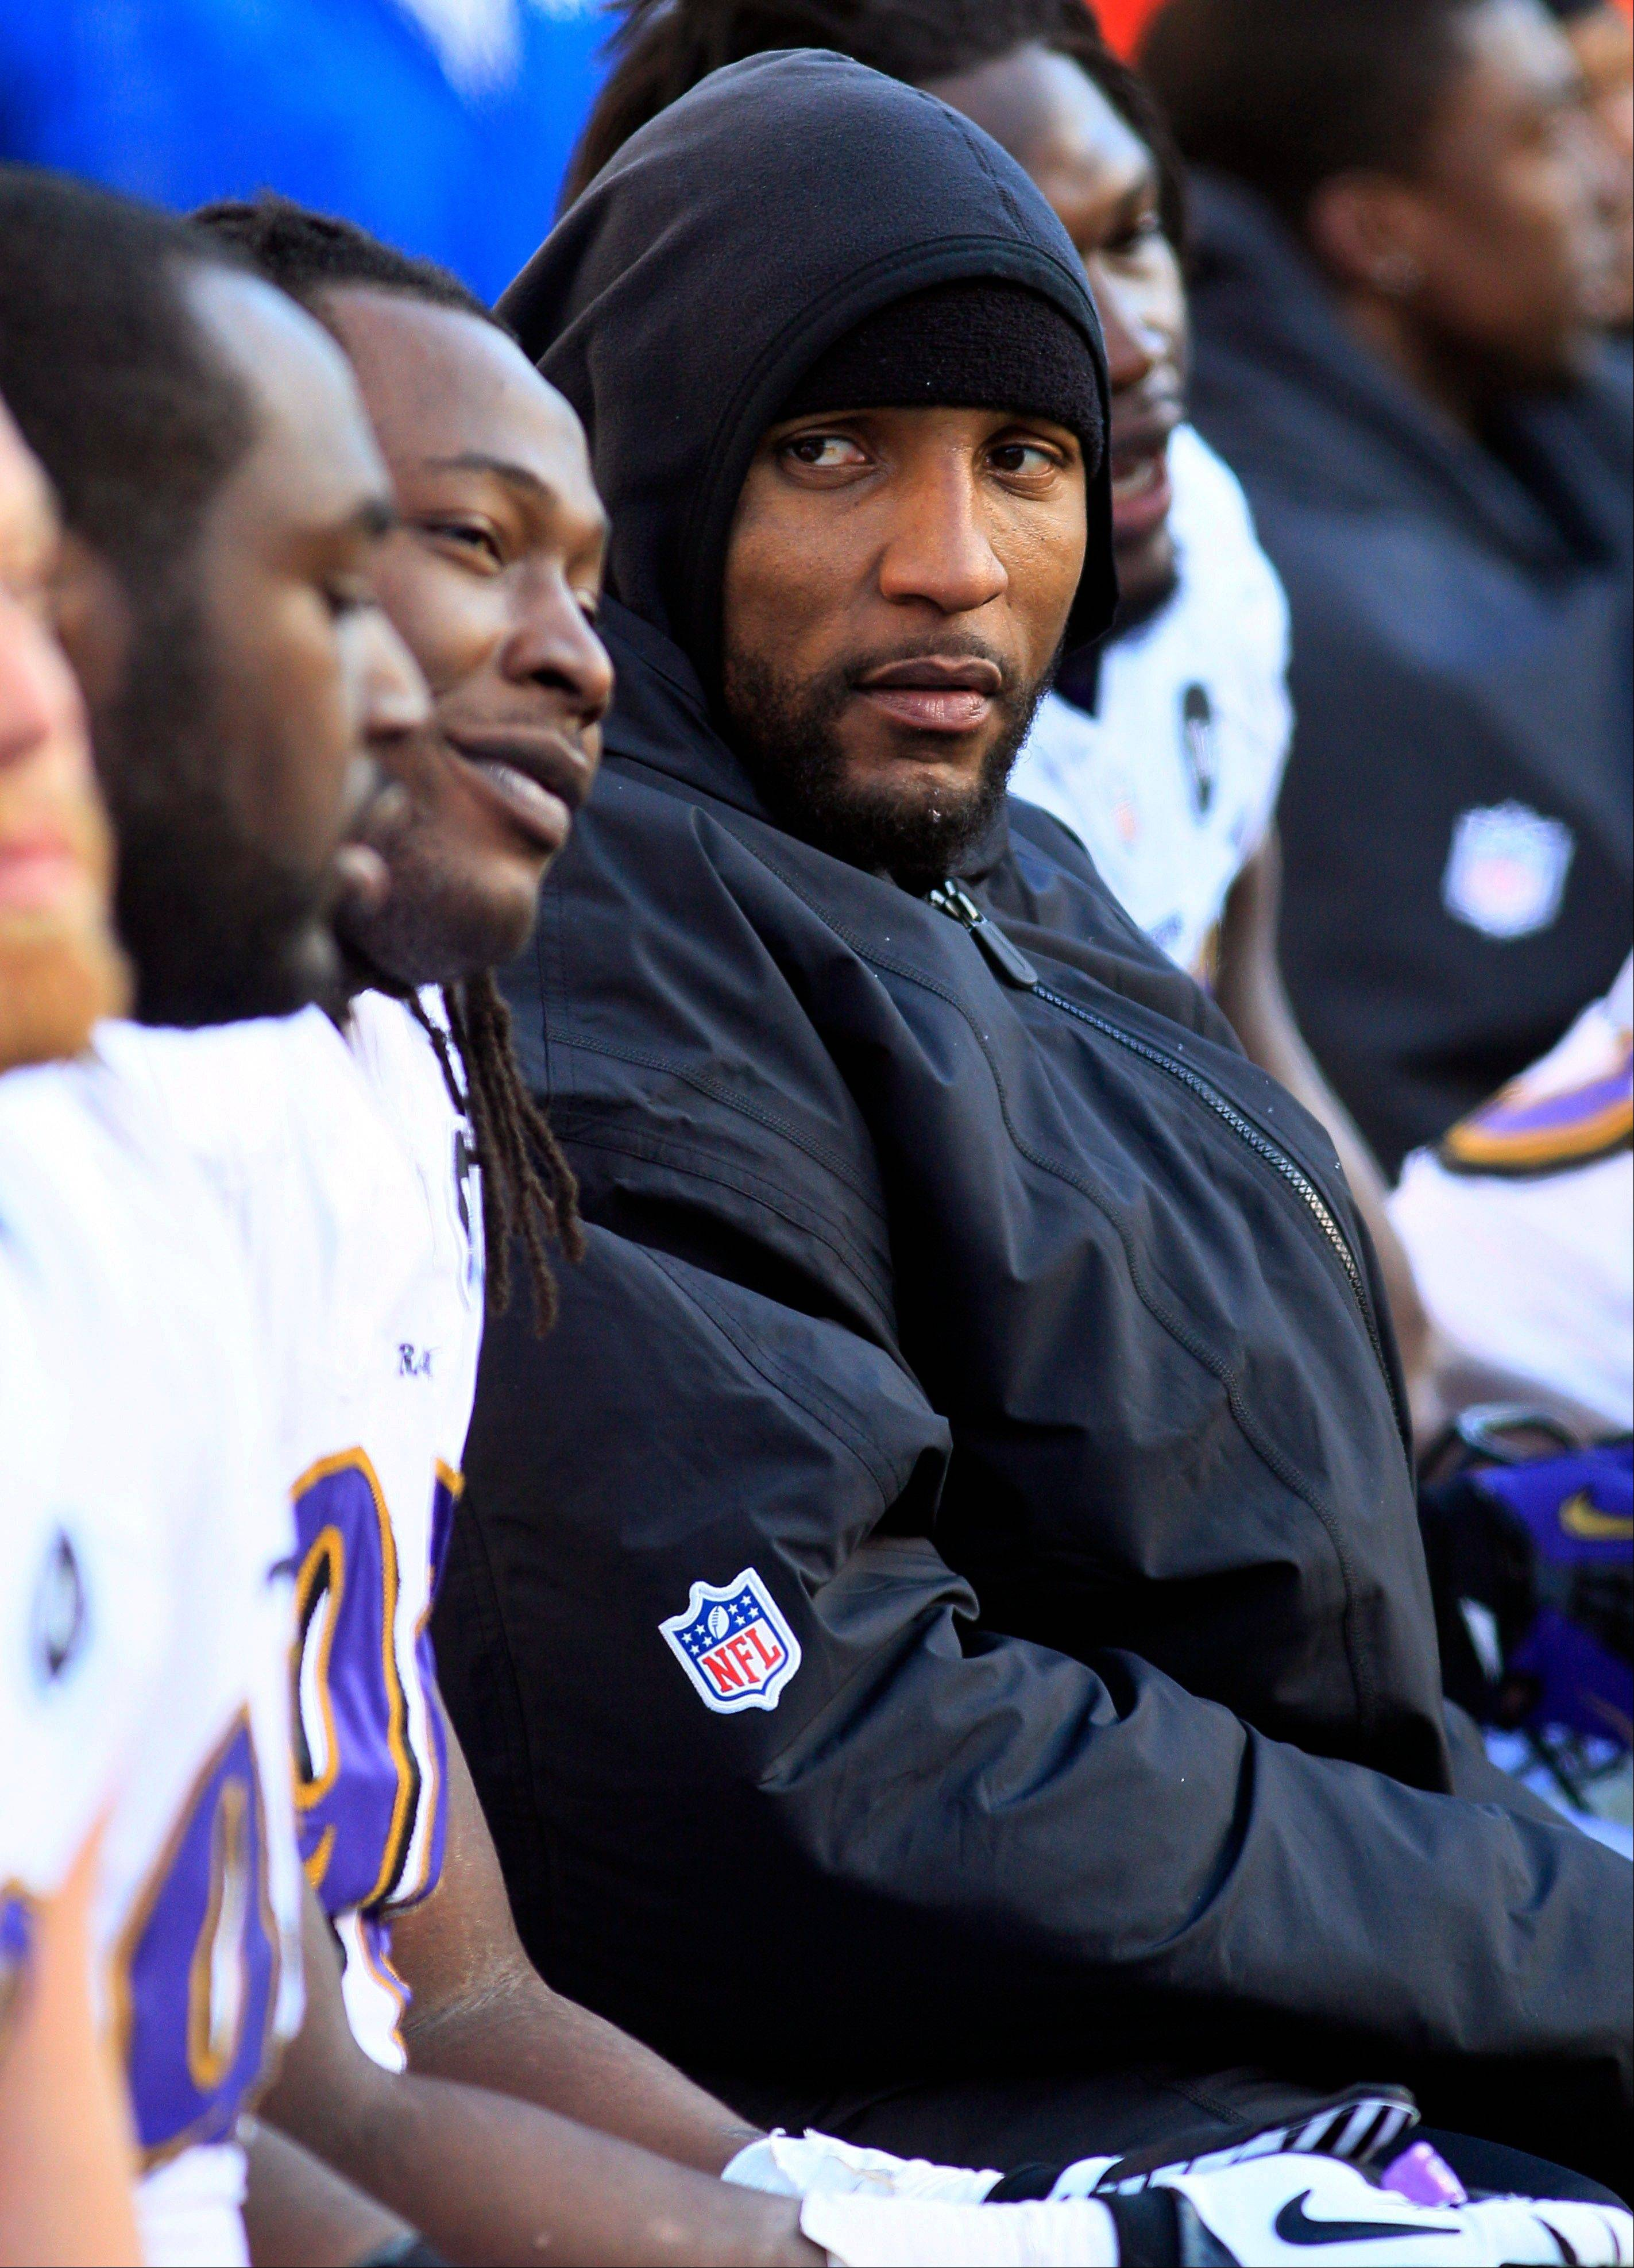 Ravens' Ray Lewis to retire after playoffs